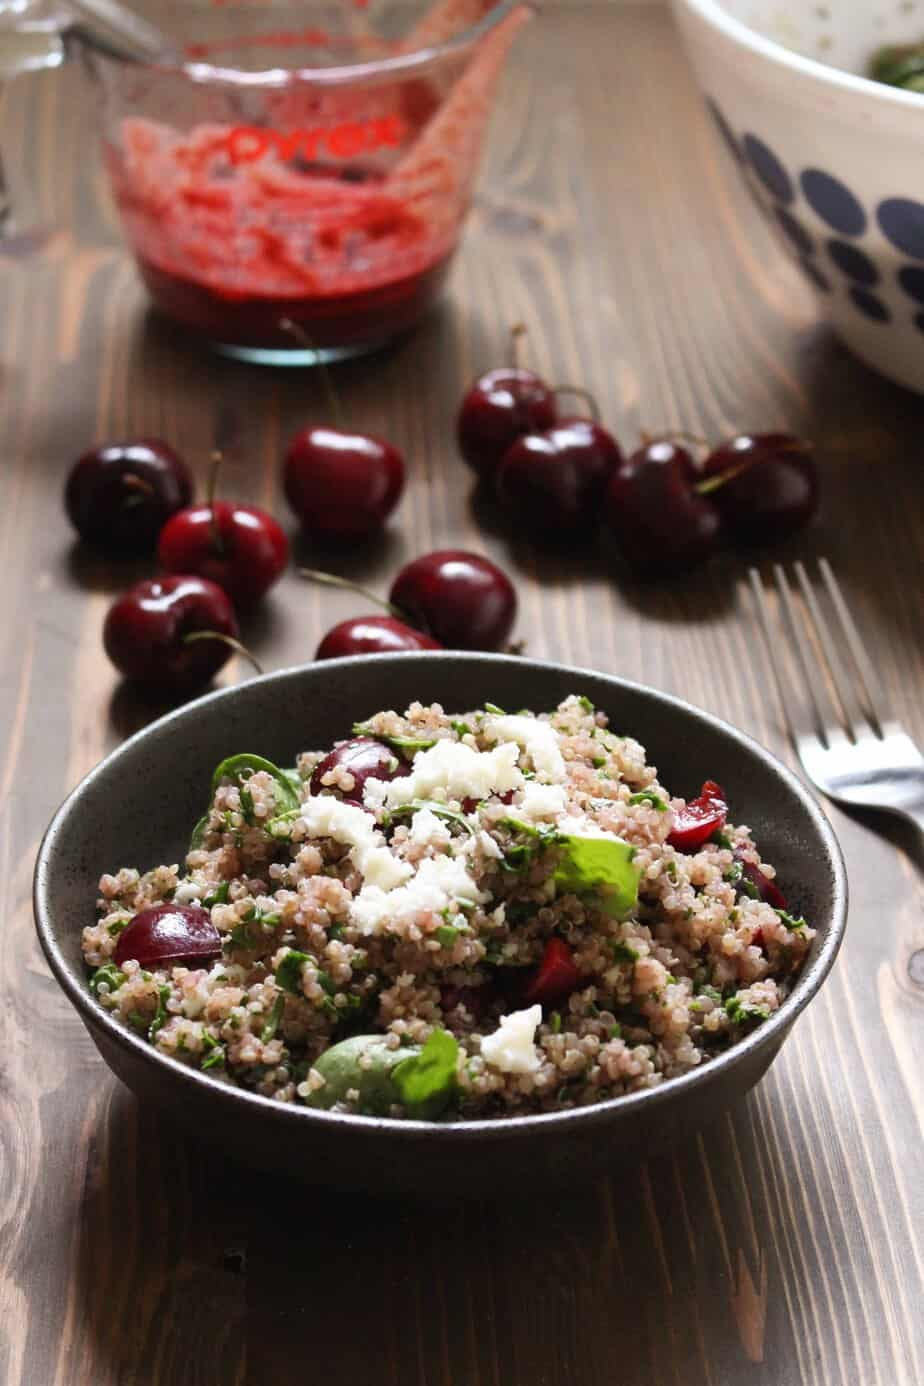 Awesome Cherry Balsamic Quinoa Salad with Spinach and Feta | Frugal Nutrition